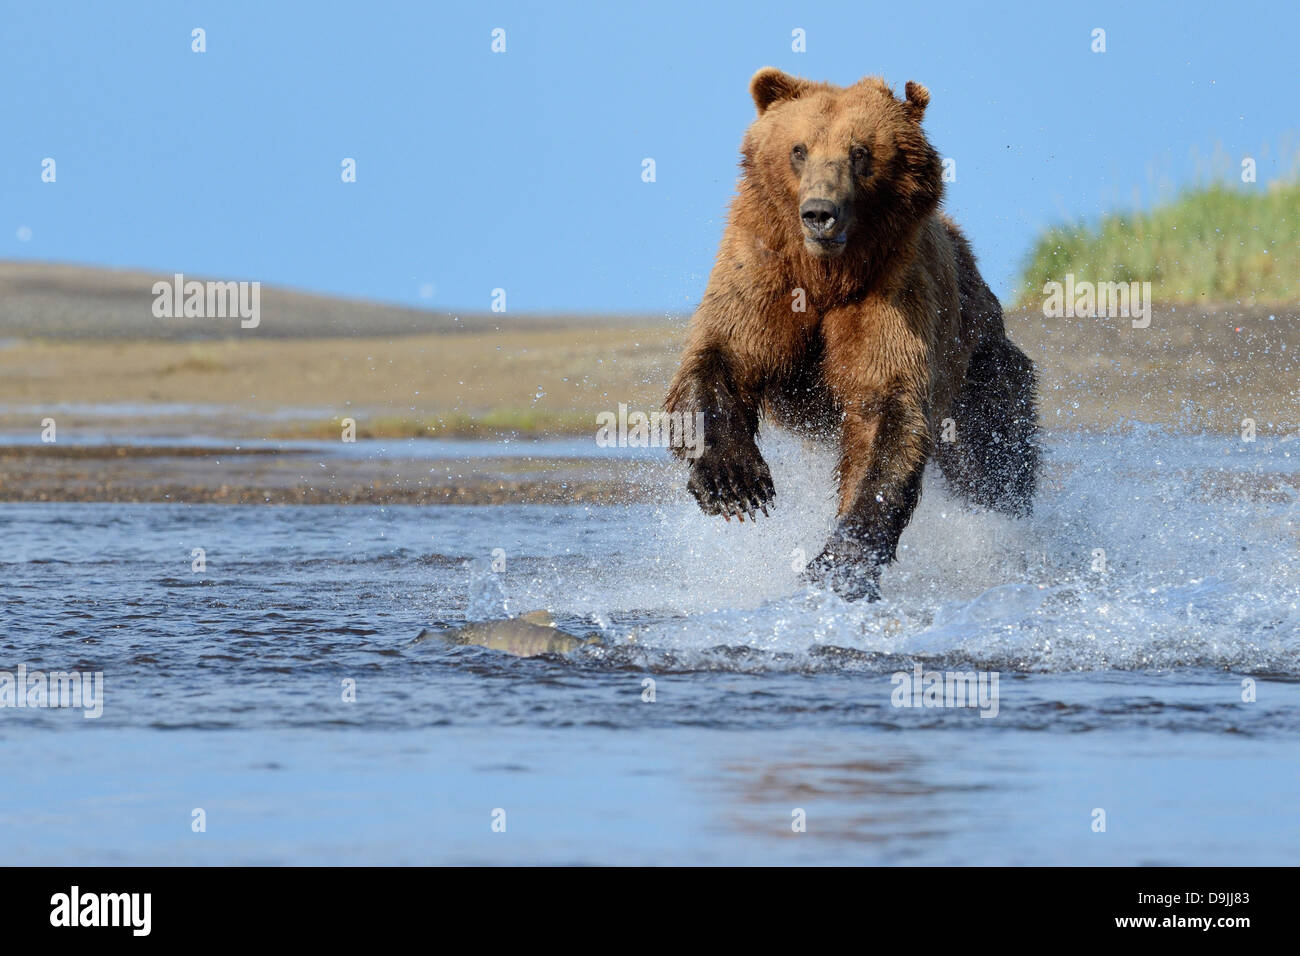 Grizzly Bear jumping at salmon - Stock Image